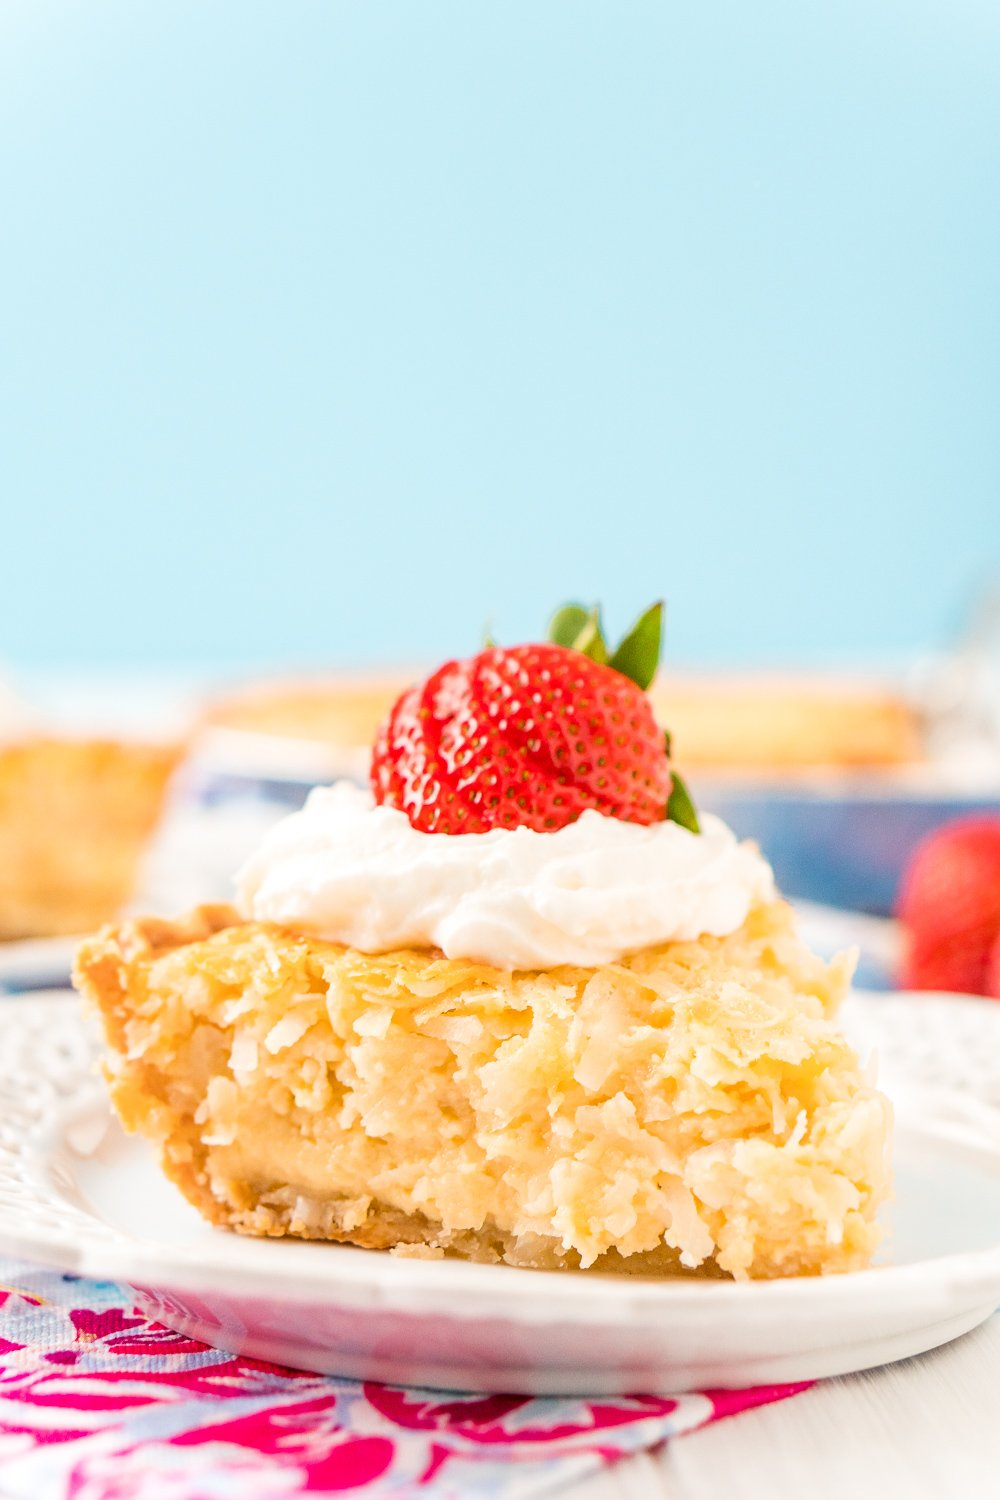 Slice of Coconut Custard Pie on a white plate with pink and white napkin and a blue background. Pie has whipped cream and a strawberry on top.